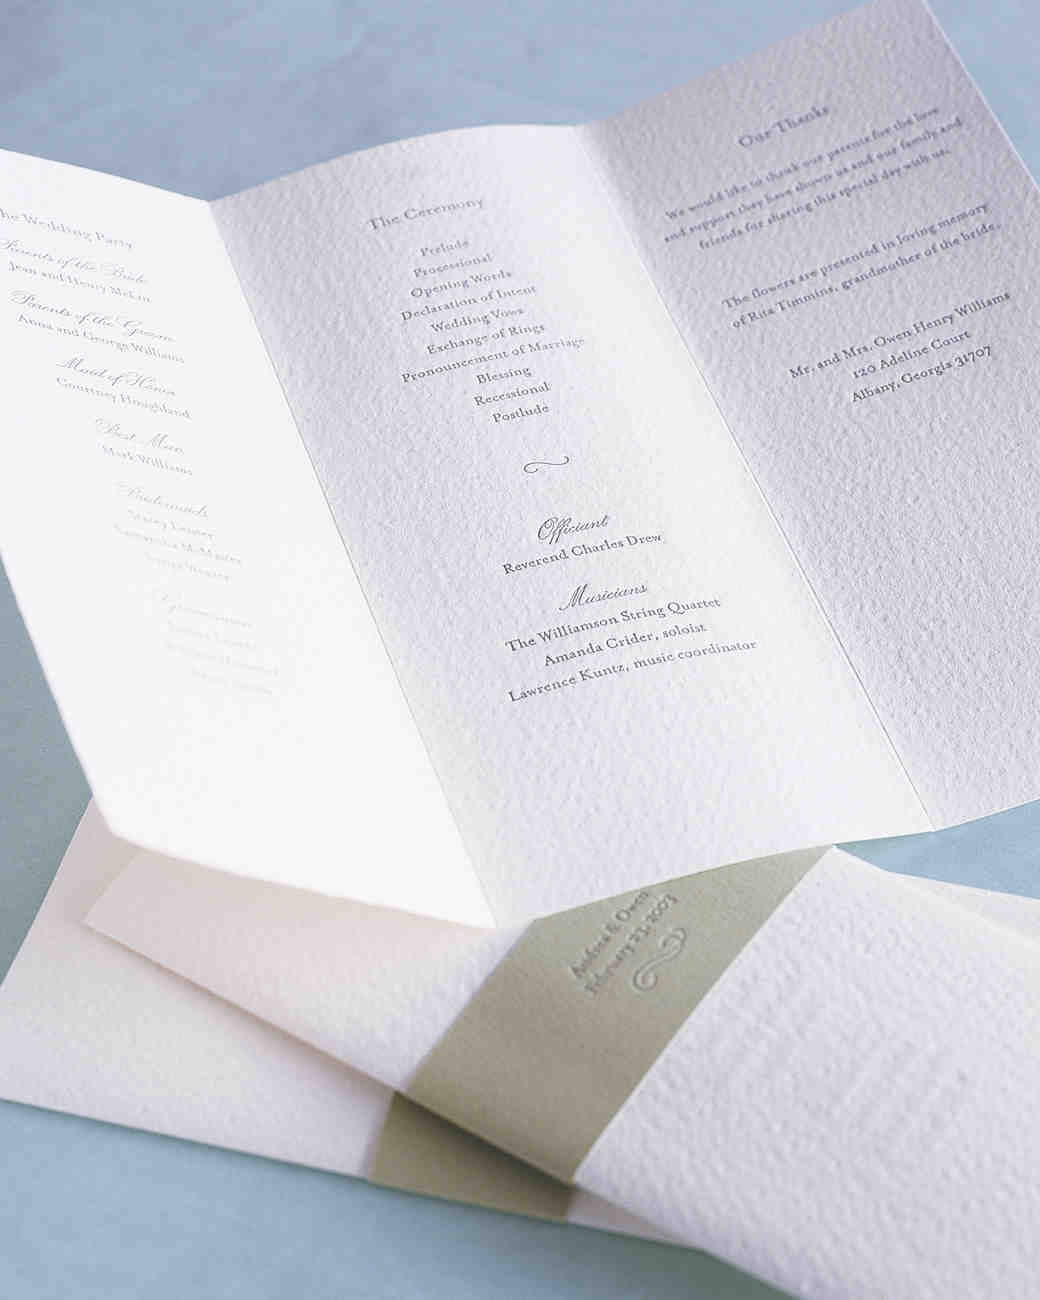 25 Ways to Upgrade Your DIY Wedding Programs | Martha Stewart Weddings